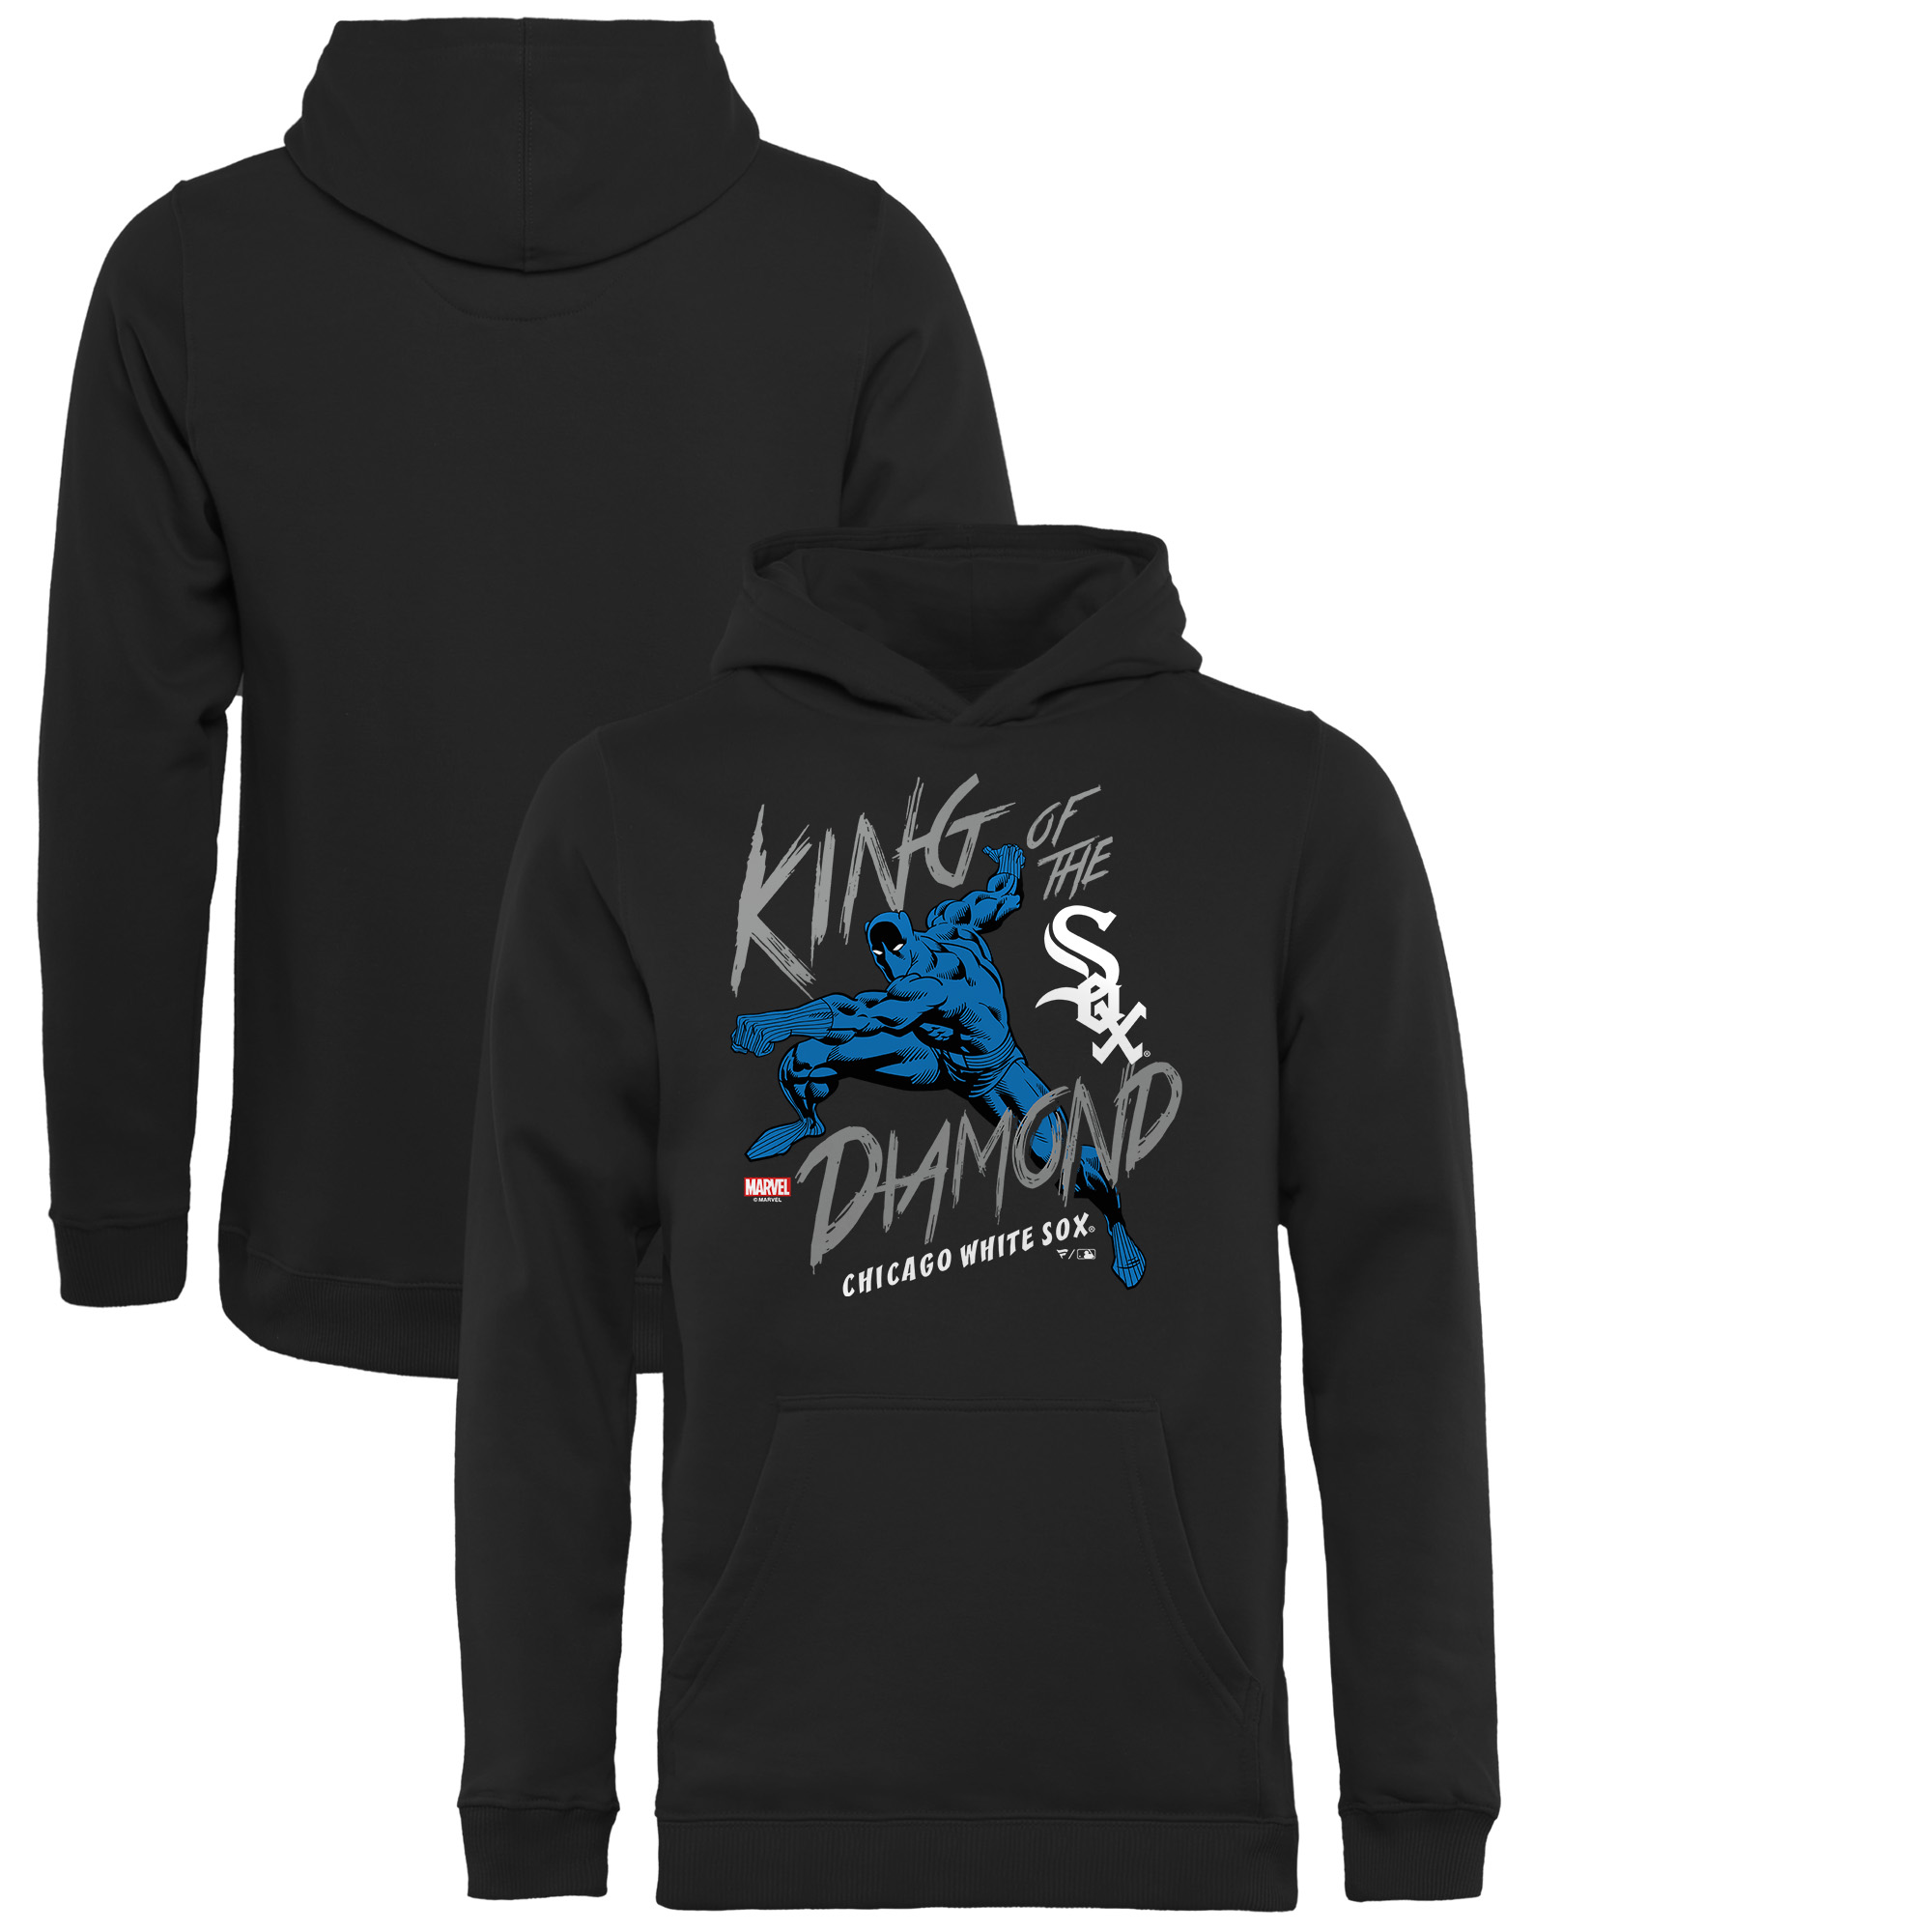 Chicago White Sox Fanatics Branded Youth MLB Marvel Black Panther King of the Diamond Pullover Hoodie - Black